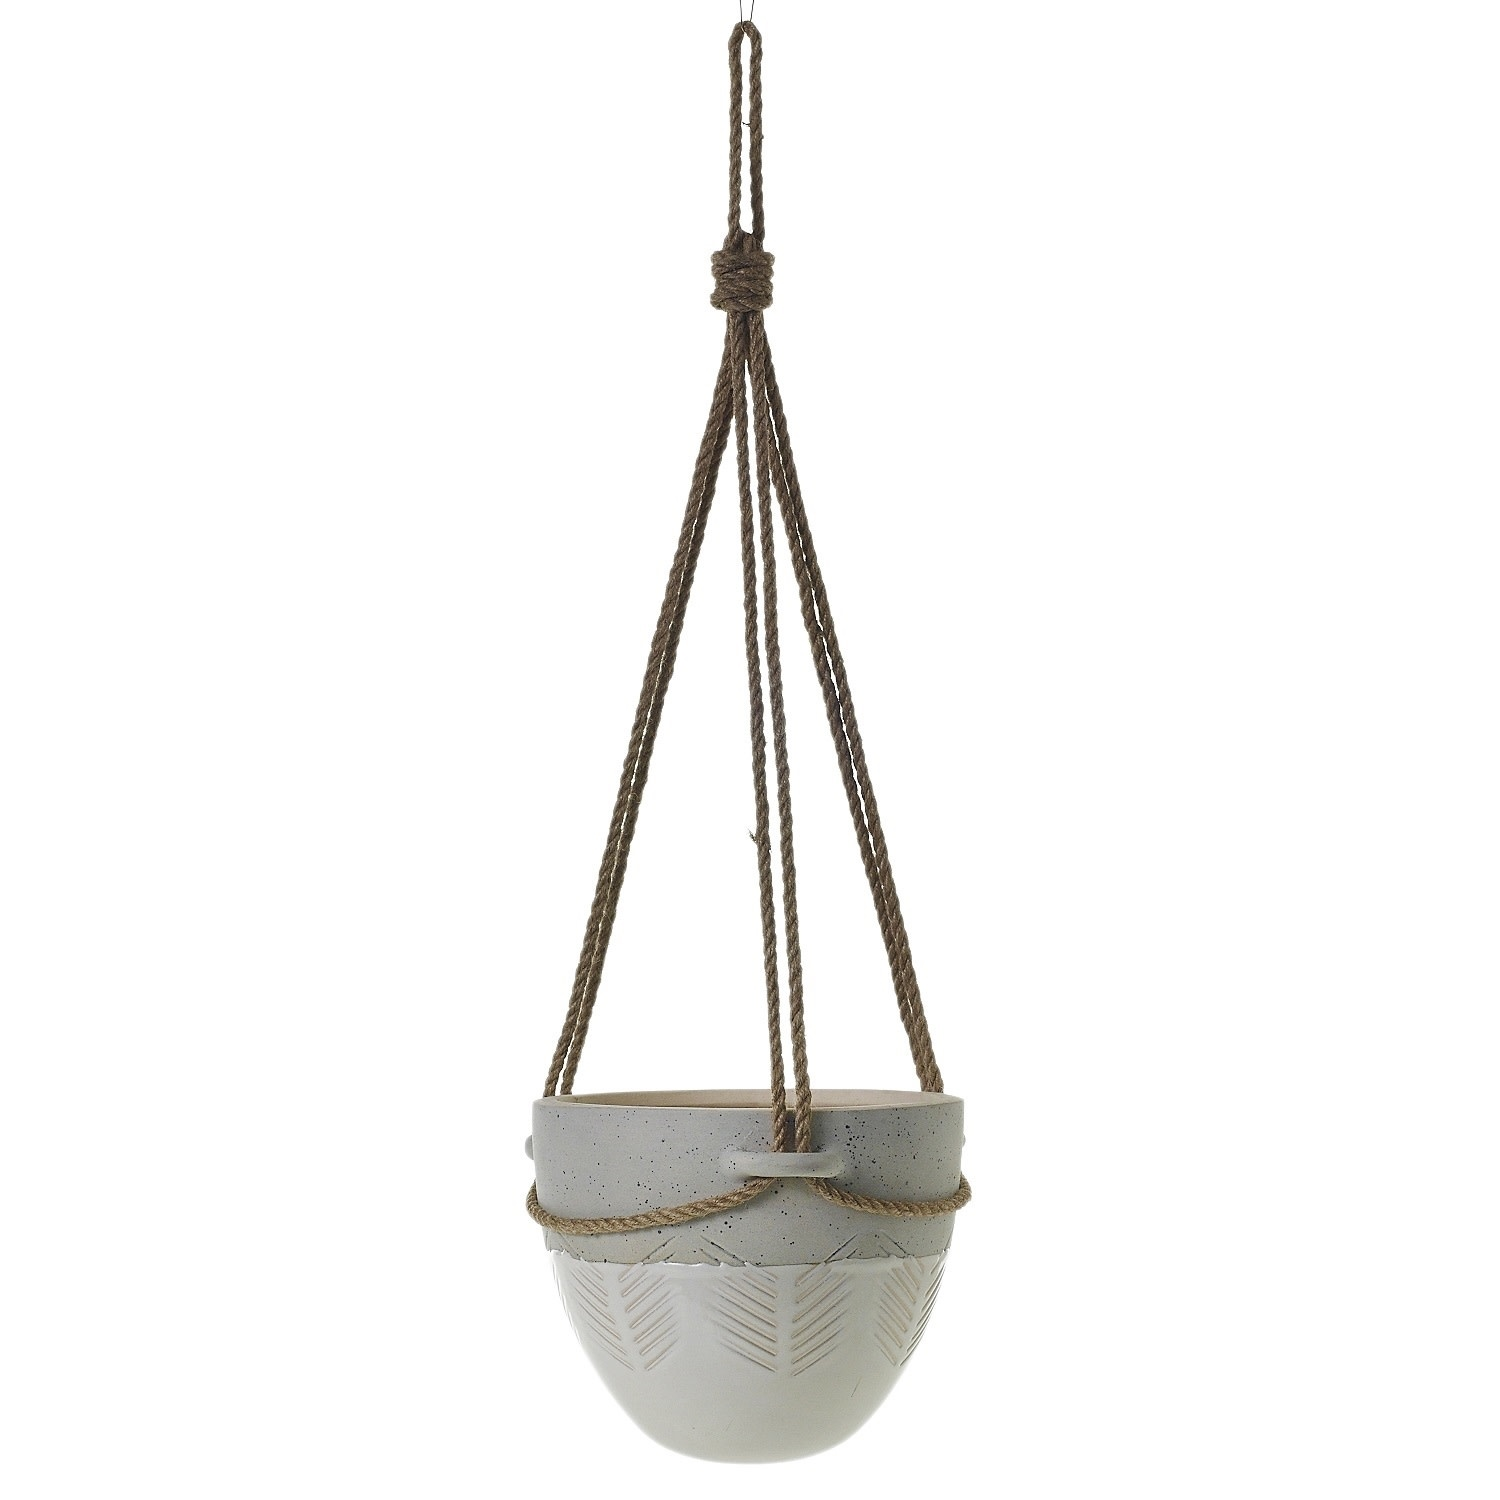 "Accent Decor Hammock Hanging Pot 9.5"" x 8.75"""